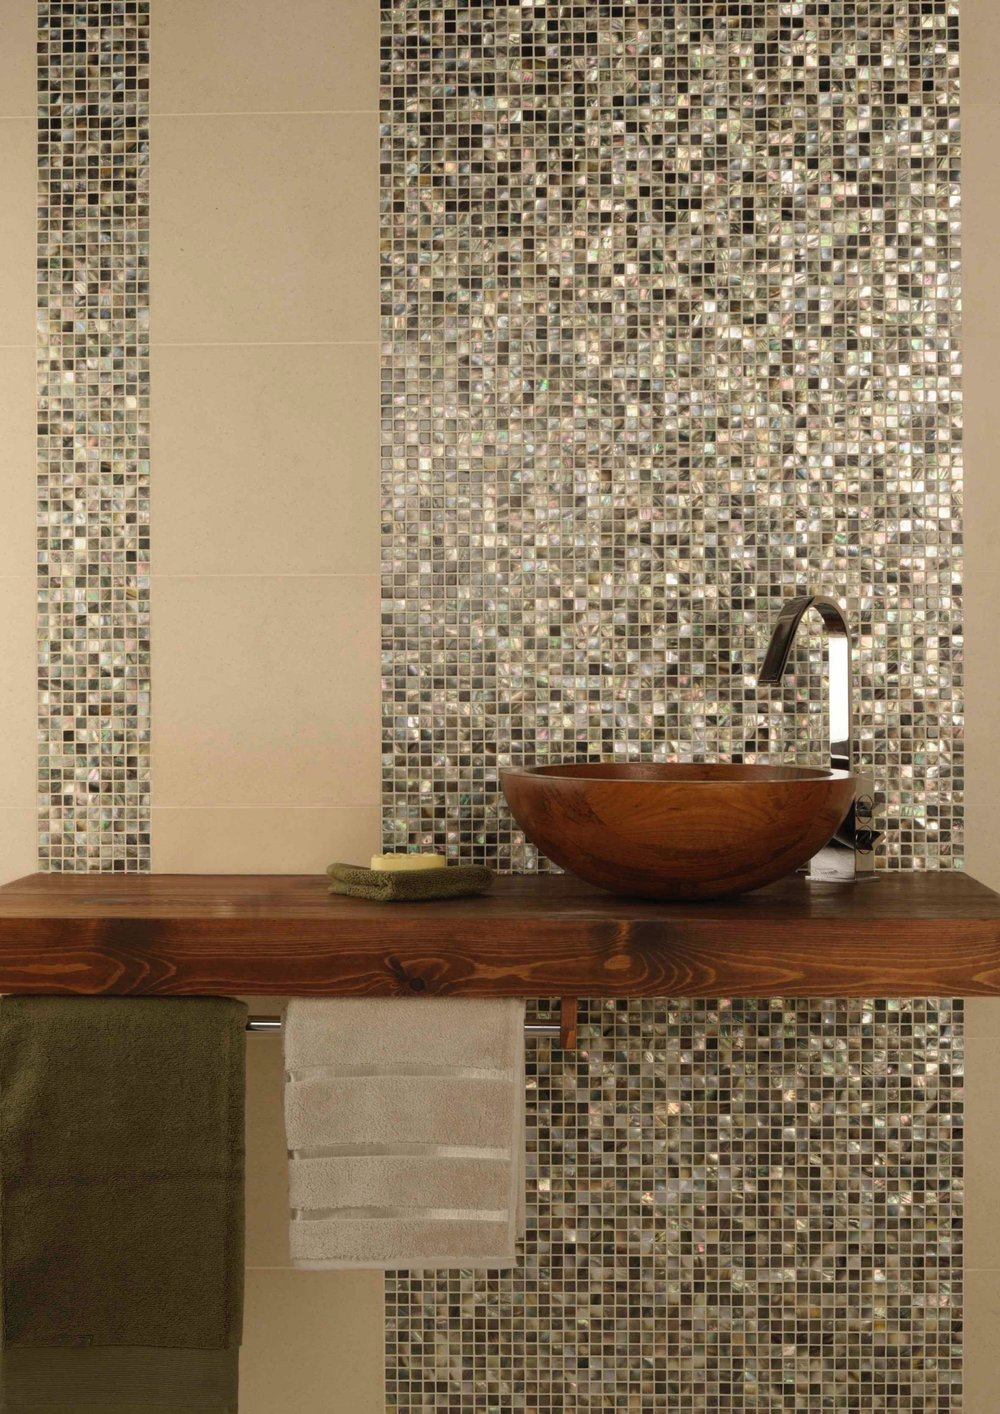 Original Style_Mosaics_Mother of Pearl 300x300x2mm Natural Shell  €89.95 €999.49 per sq m.jpg